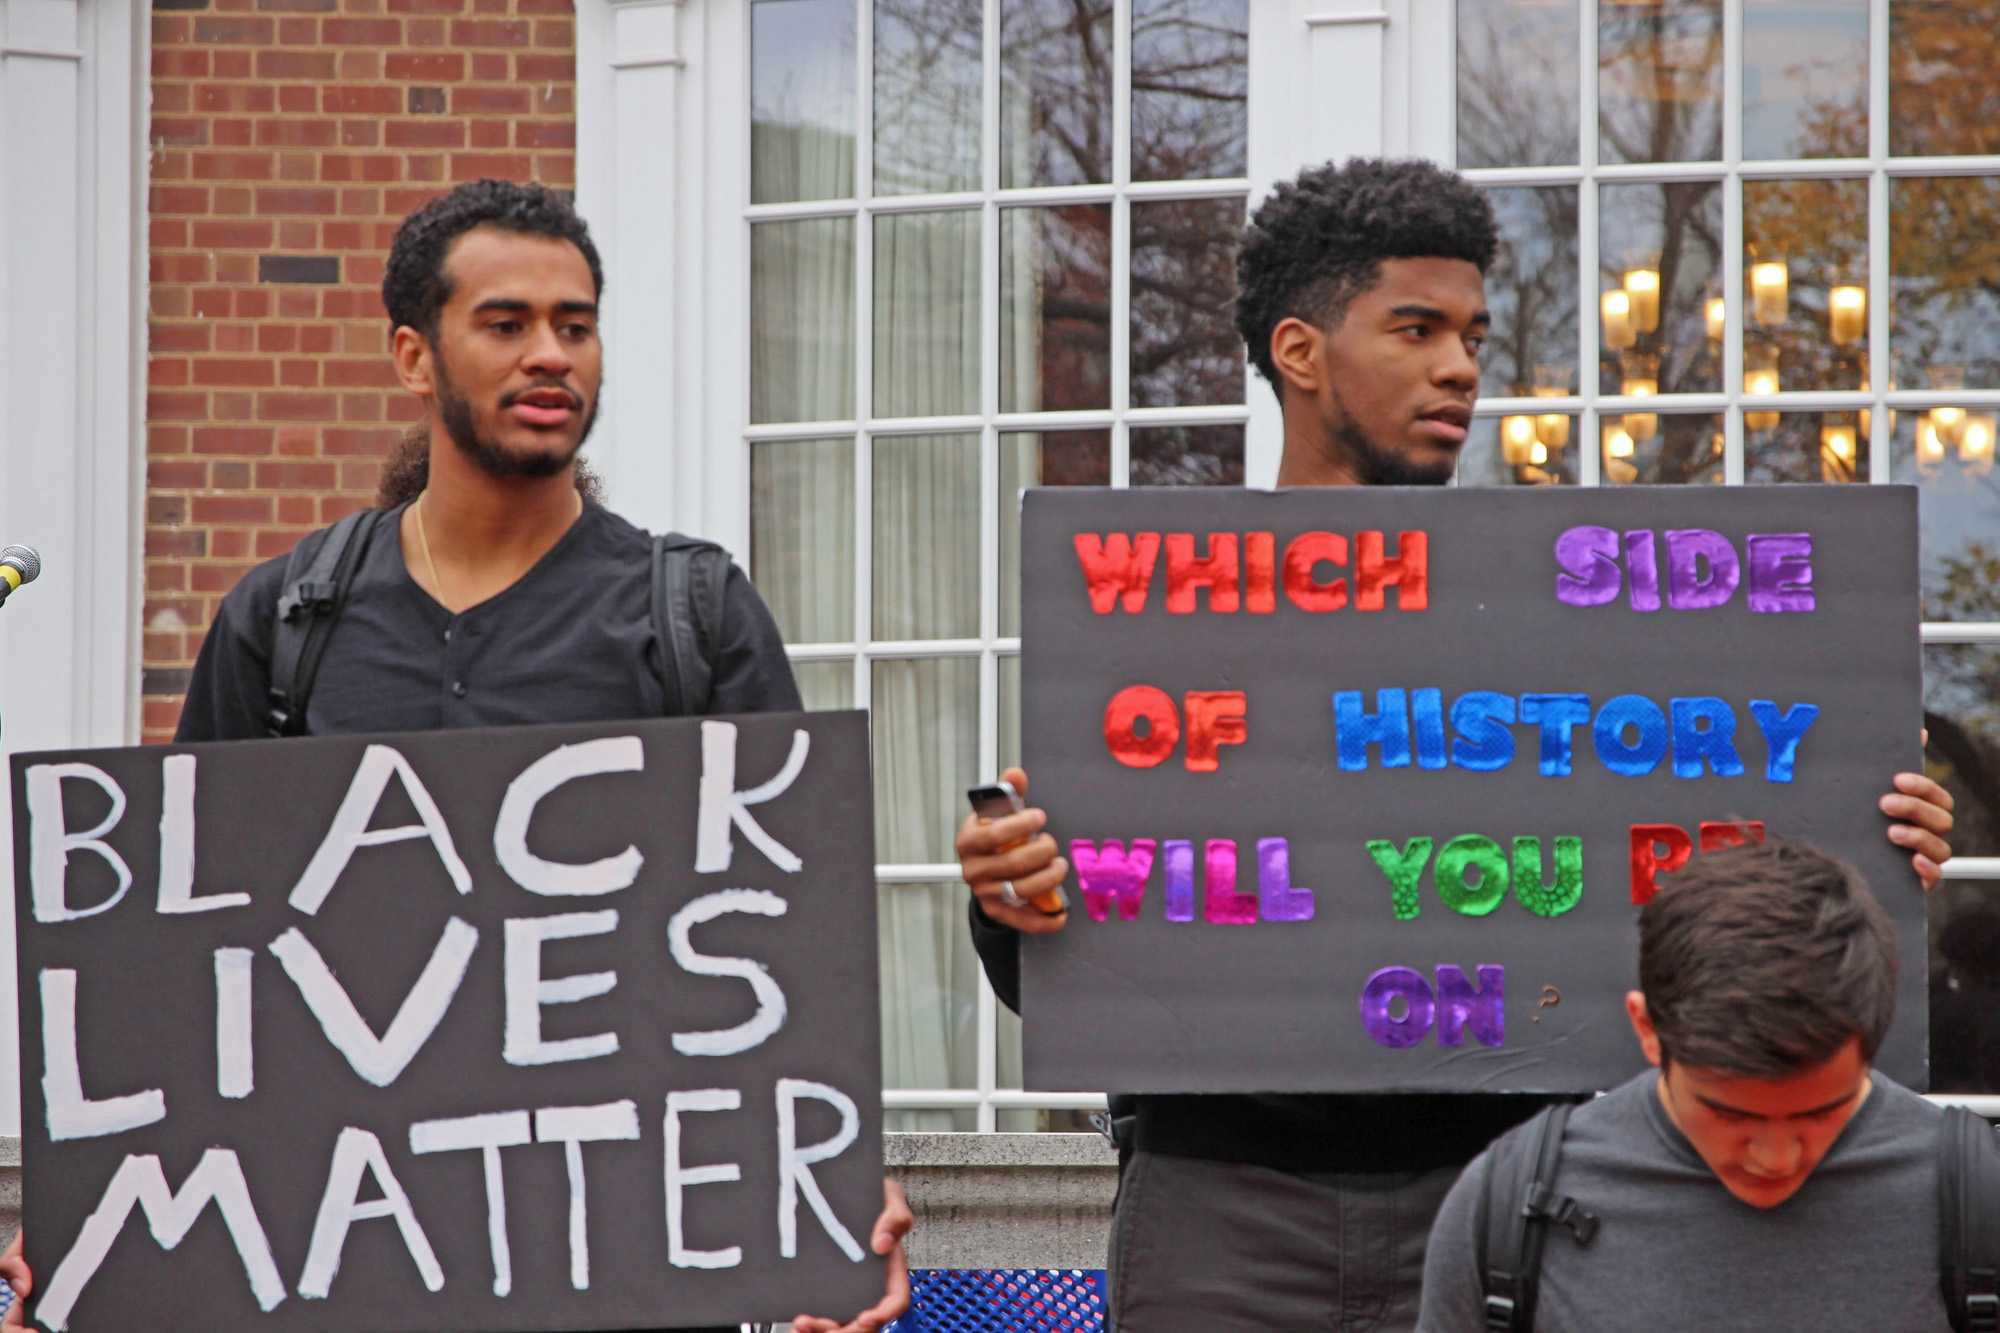 The+%22University+of+Illinois+White+Student+Union%22+Facebook%26nbsp%3Bpage+represents+a+vast+minority+of+students%2C+but%26nbsp%3Bit+shows+direct+sources+of+racism+here%2C+the+presence+of+which+is+embarrassing.%26nbsp%3B